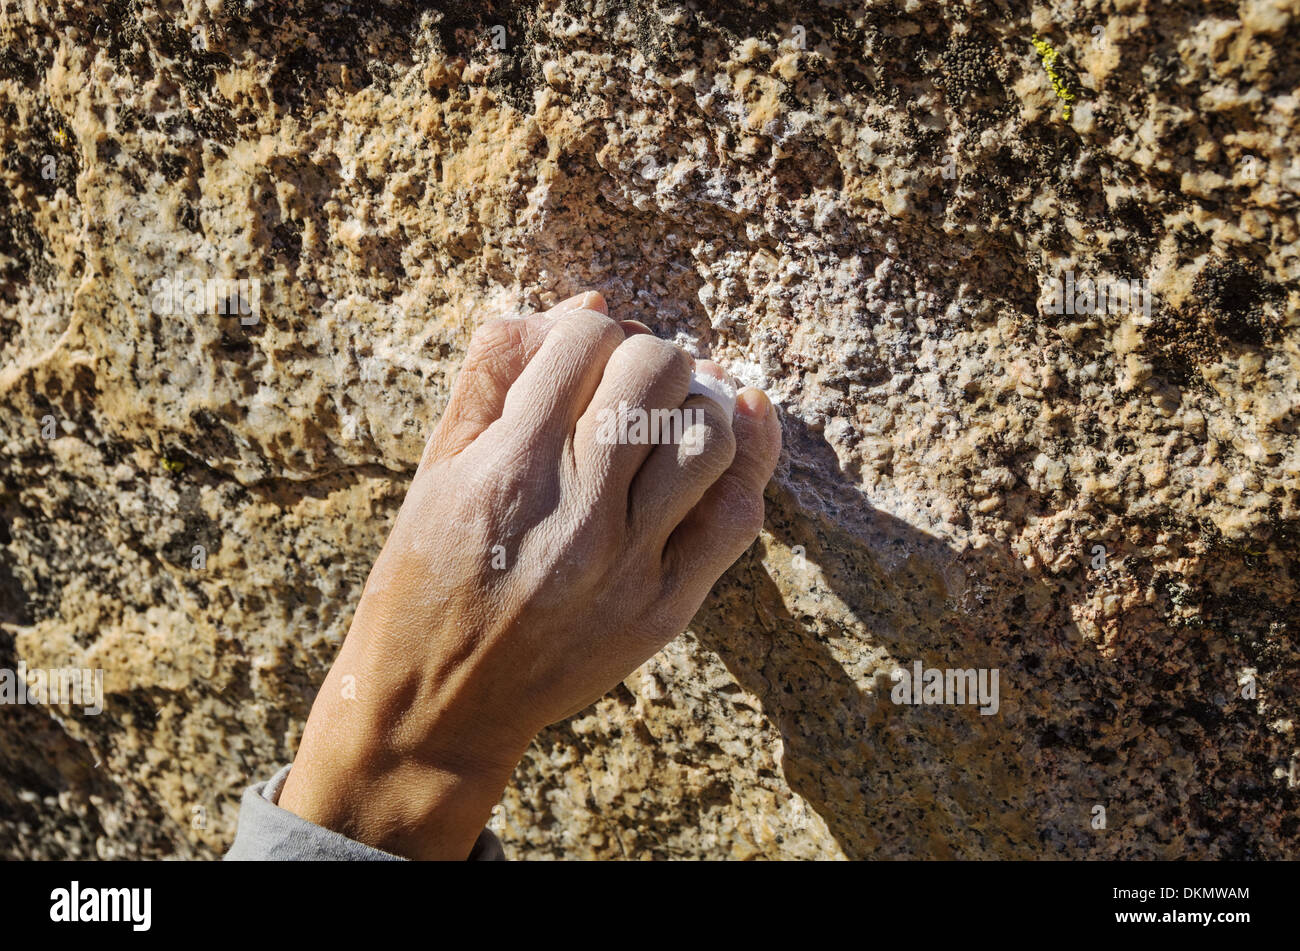 a woman climber hand grabbing a small rock hold with a crimp grip - Stock Image